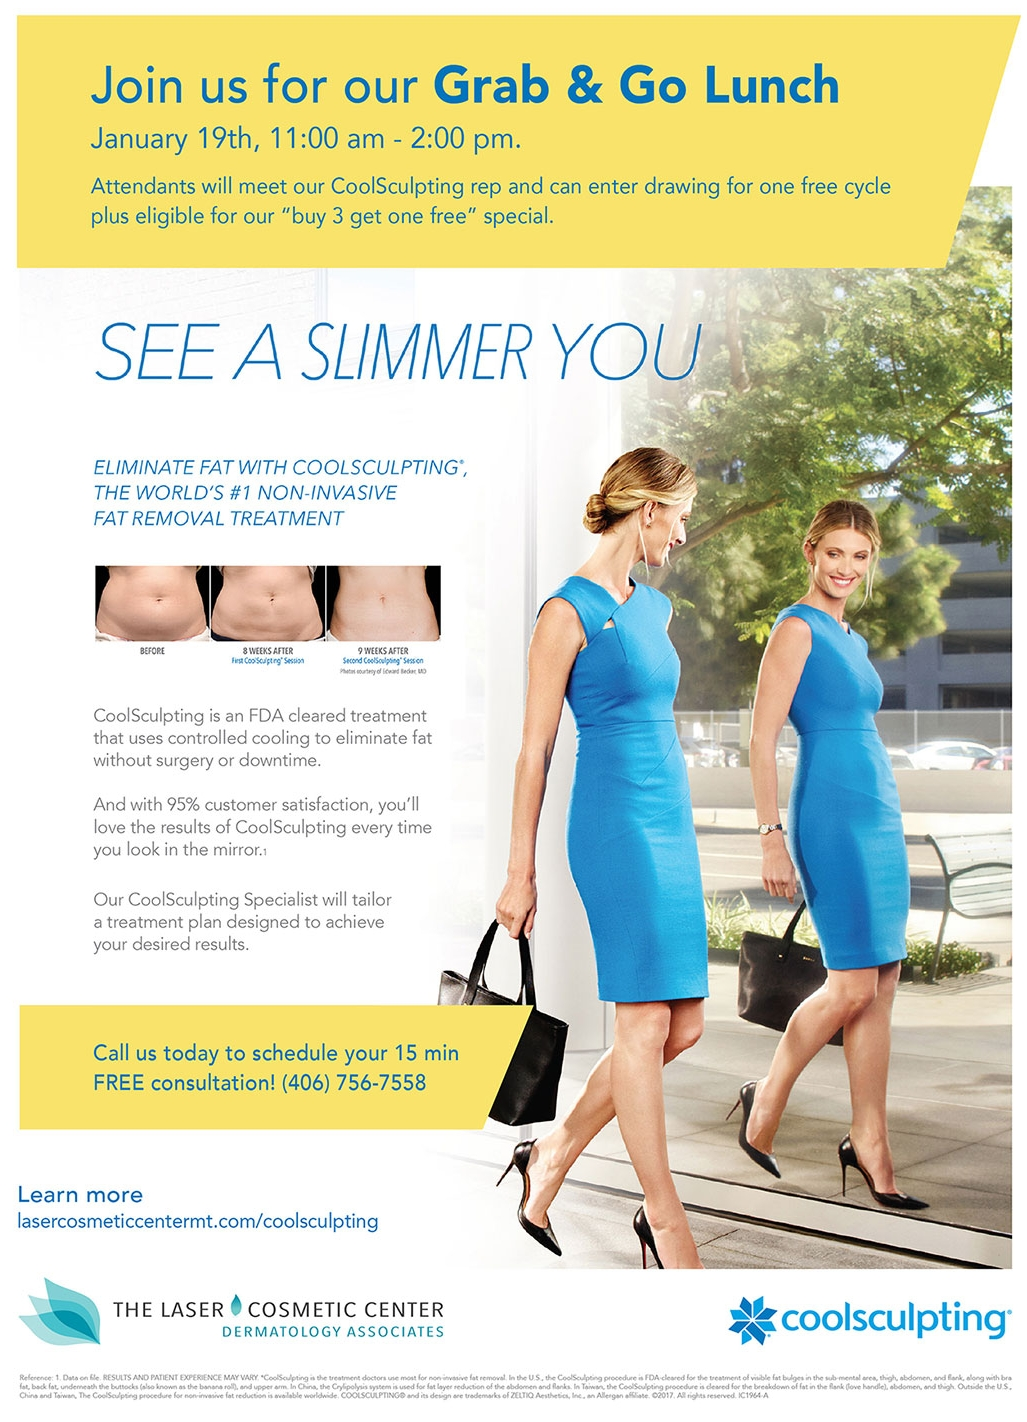 Montana-Woman_CoolSculpting-Slimmer-You